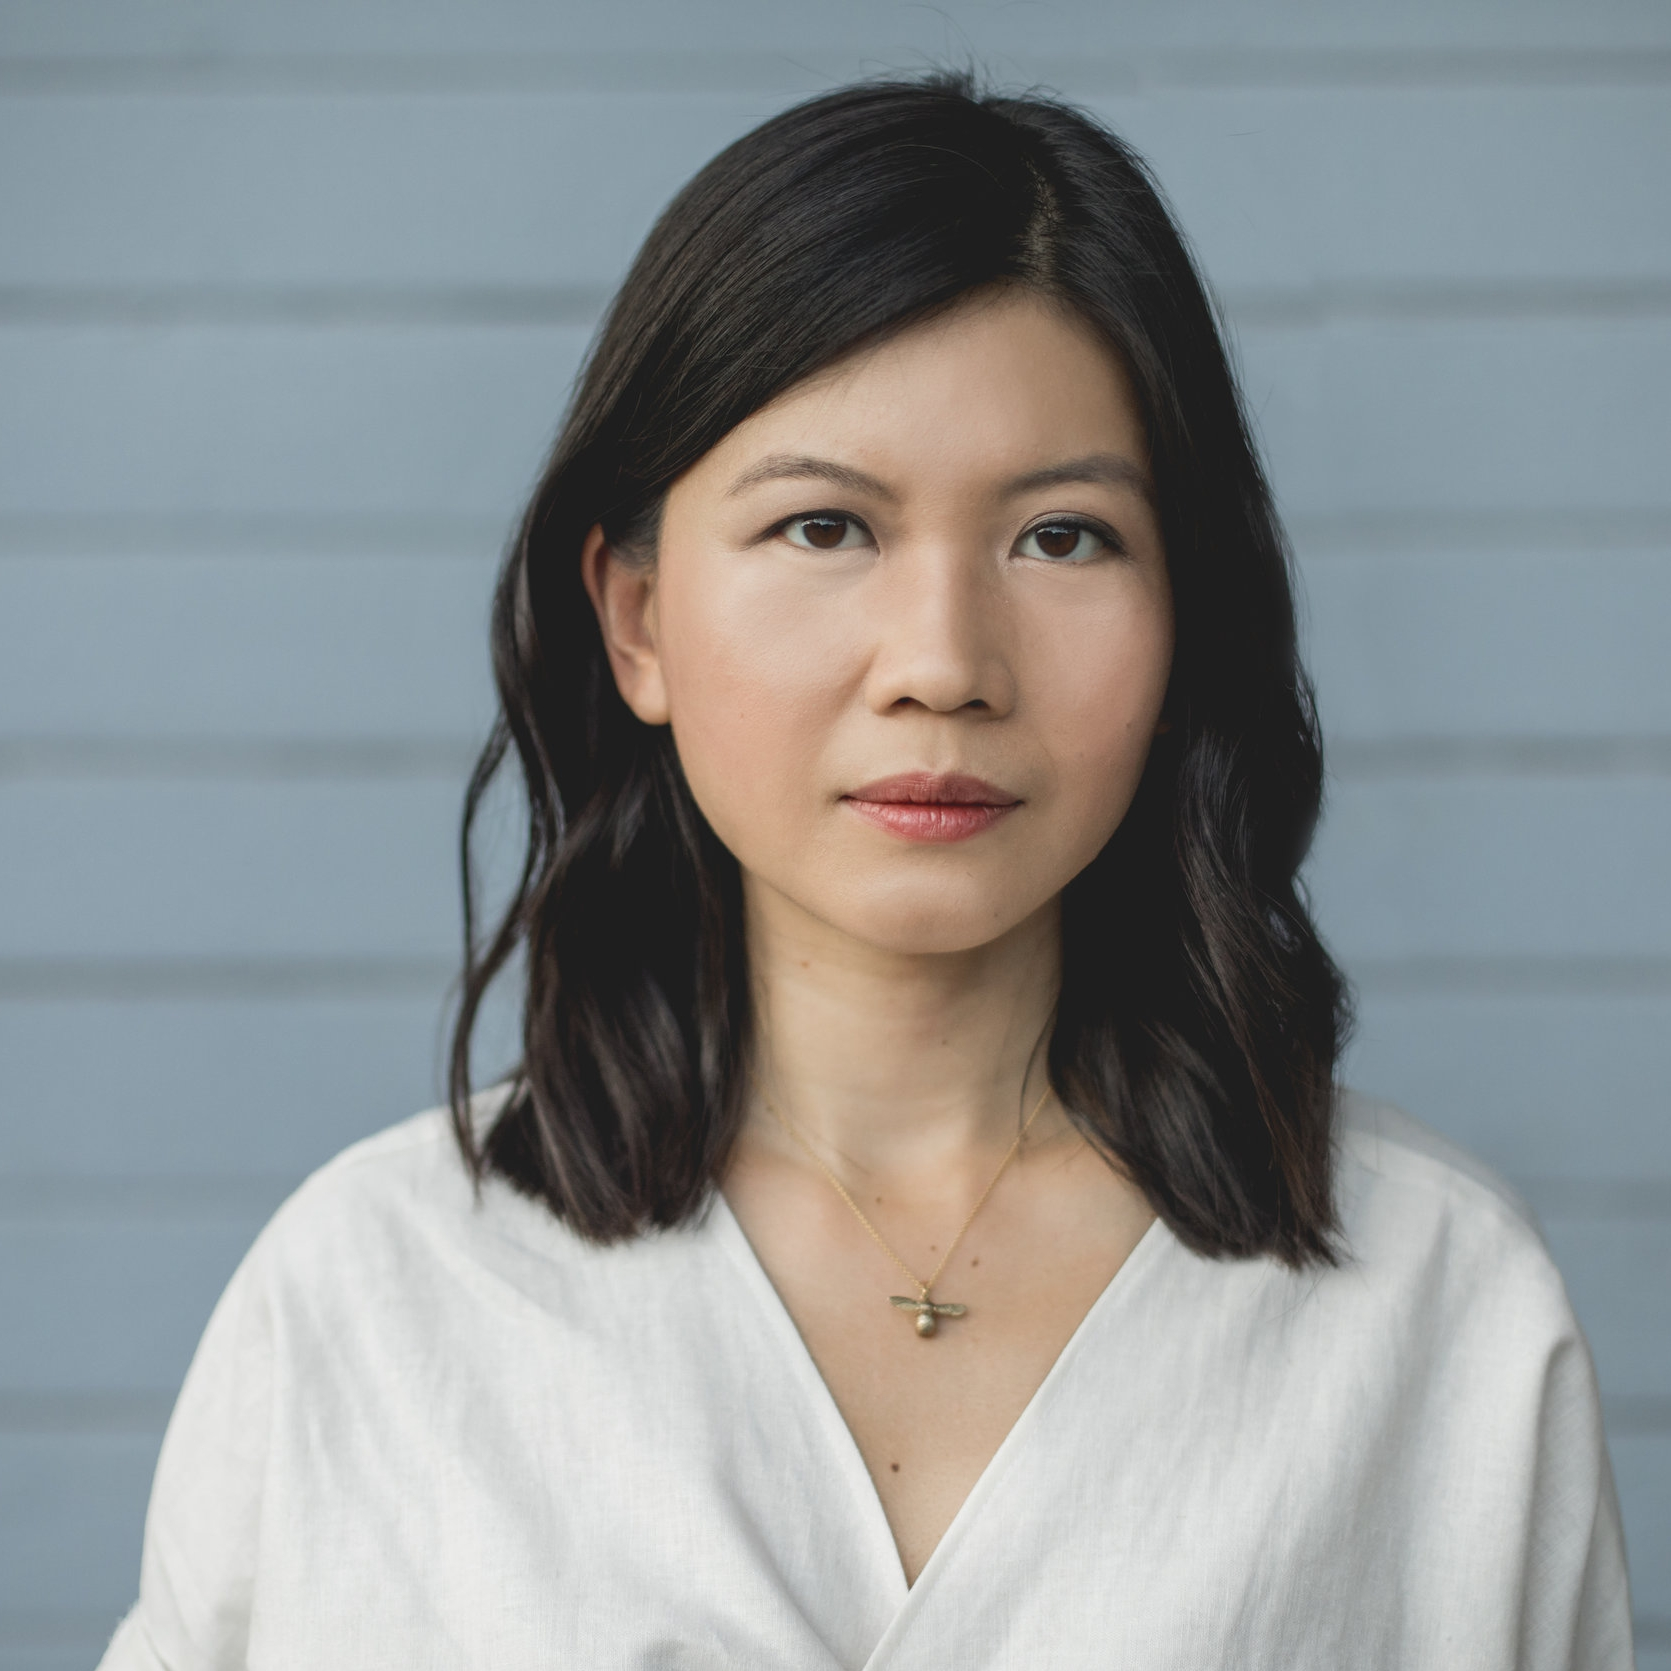 Rachel Heng's debut novel,   Suicide Club  , will be translated in nine languages worldwide and has been featured as a most anticipated read by The Independent, The Irish Times, The Huffington Post, Gizmodo, ELLE, Grazia, Stylist and NYLON. Her short fiction has received a Pushcart Prize Special Mention and  Prairie Schooner 's Jane Geske Award, and has been published in  Glimmer Train ,  The Offing ,  Prairie Schooner  and elsewhere. Rachel is currently a fellow at the Michener Center for Writers, UT Austin.